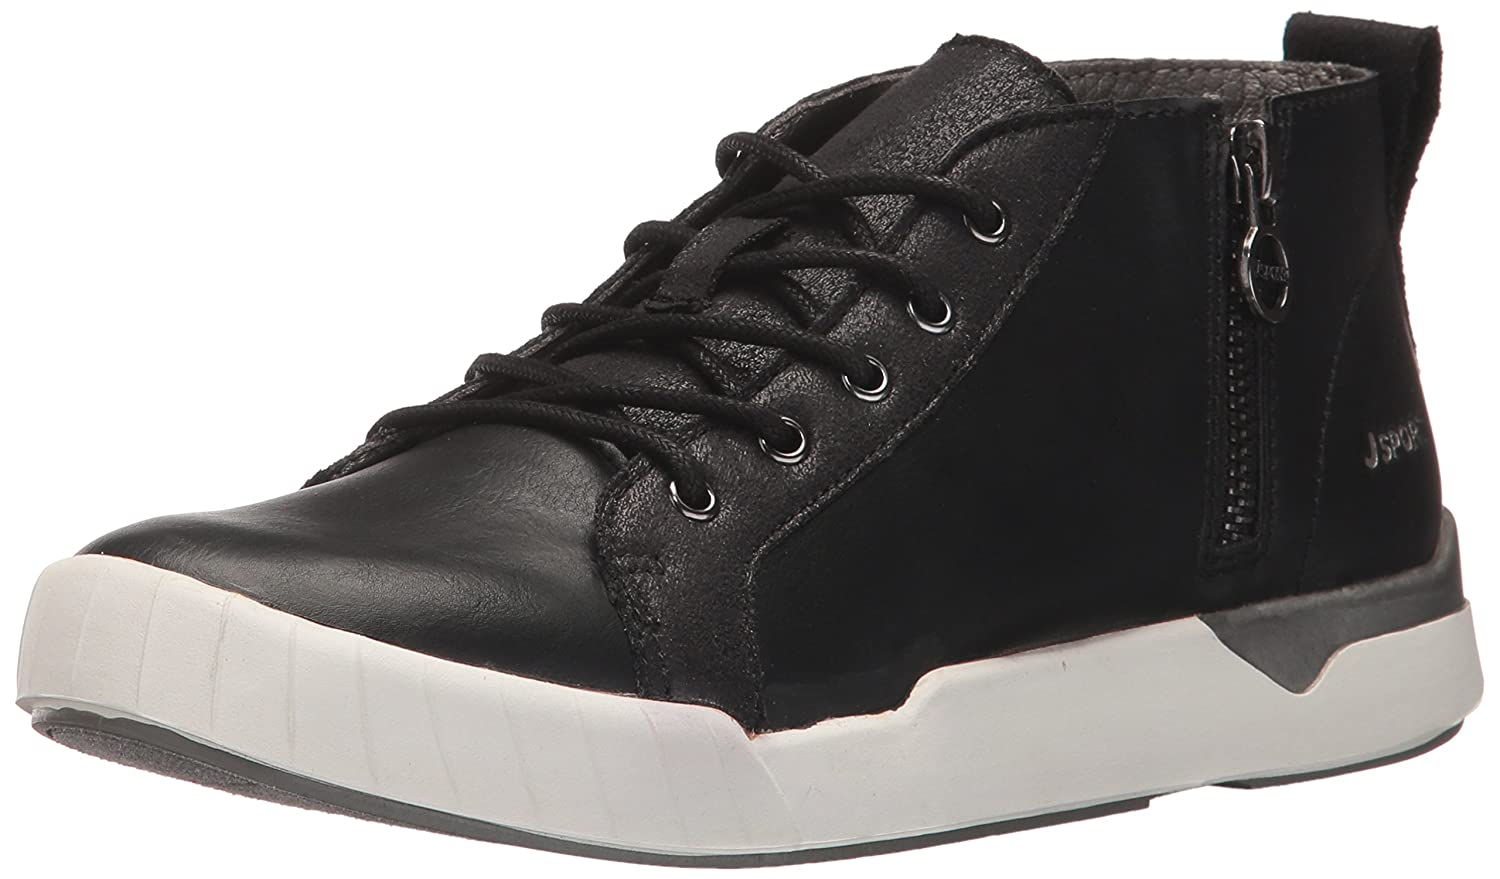 Black Jambu Womens Cranford Fashion Sneaker